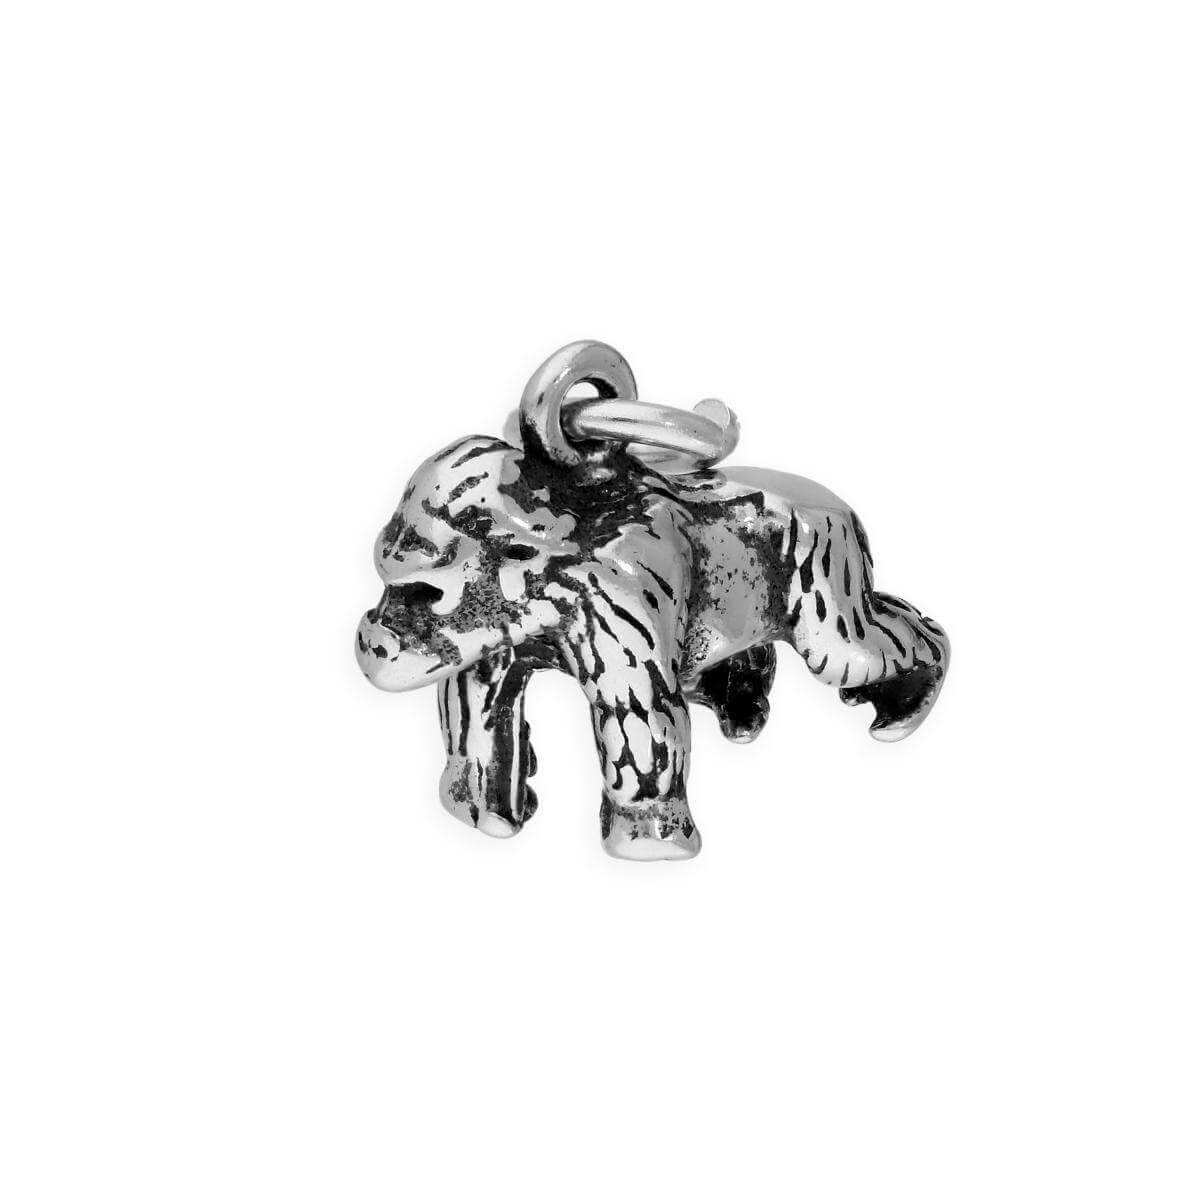 Raposa Elegance Sterling Silver 3D Sitting Puppy Charm on a Sterling Silver 16 Ball Chain Necklace